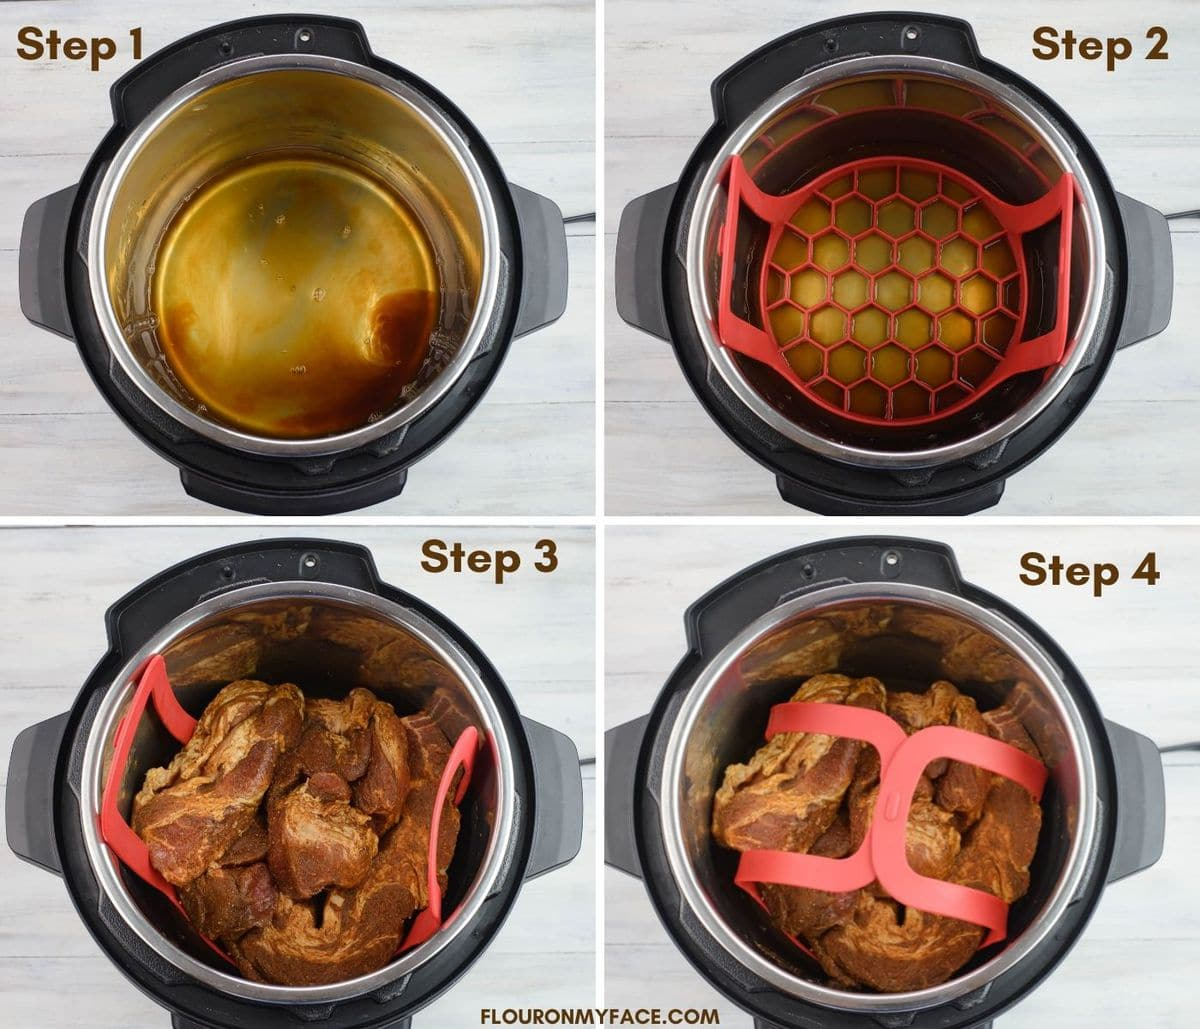 Four photo collage of the first, second, third and fourth steps to prepare the Instant Pot.